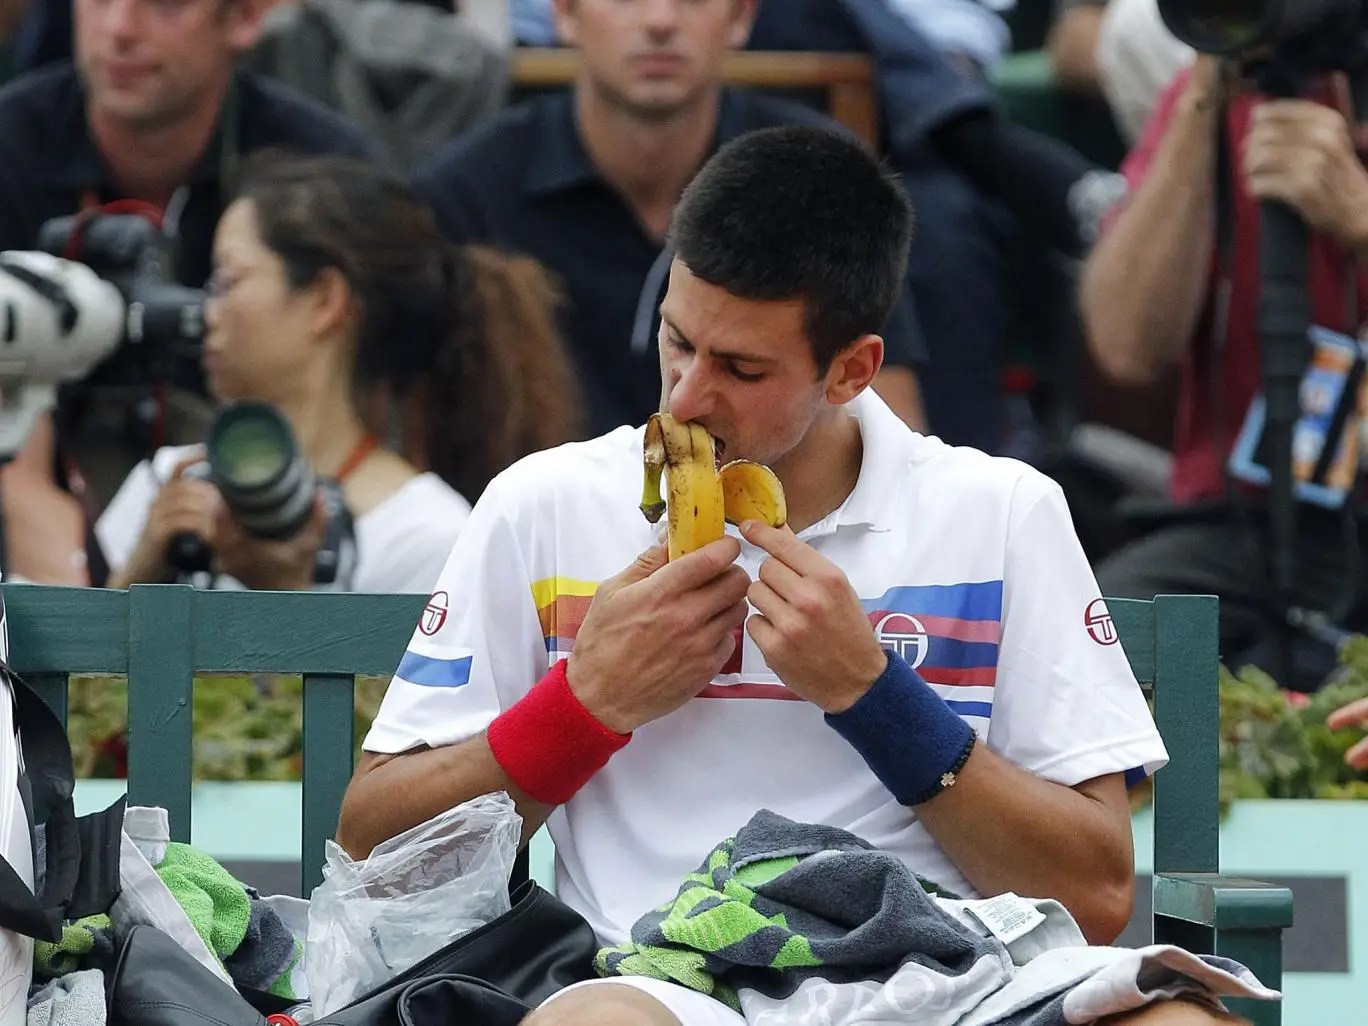 Novak Djokovic tucks into a healthy banana during a break between games